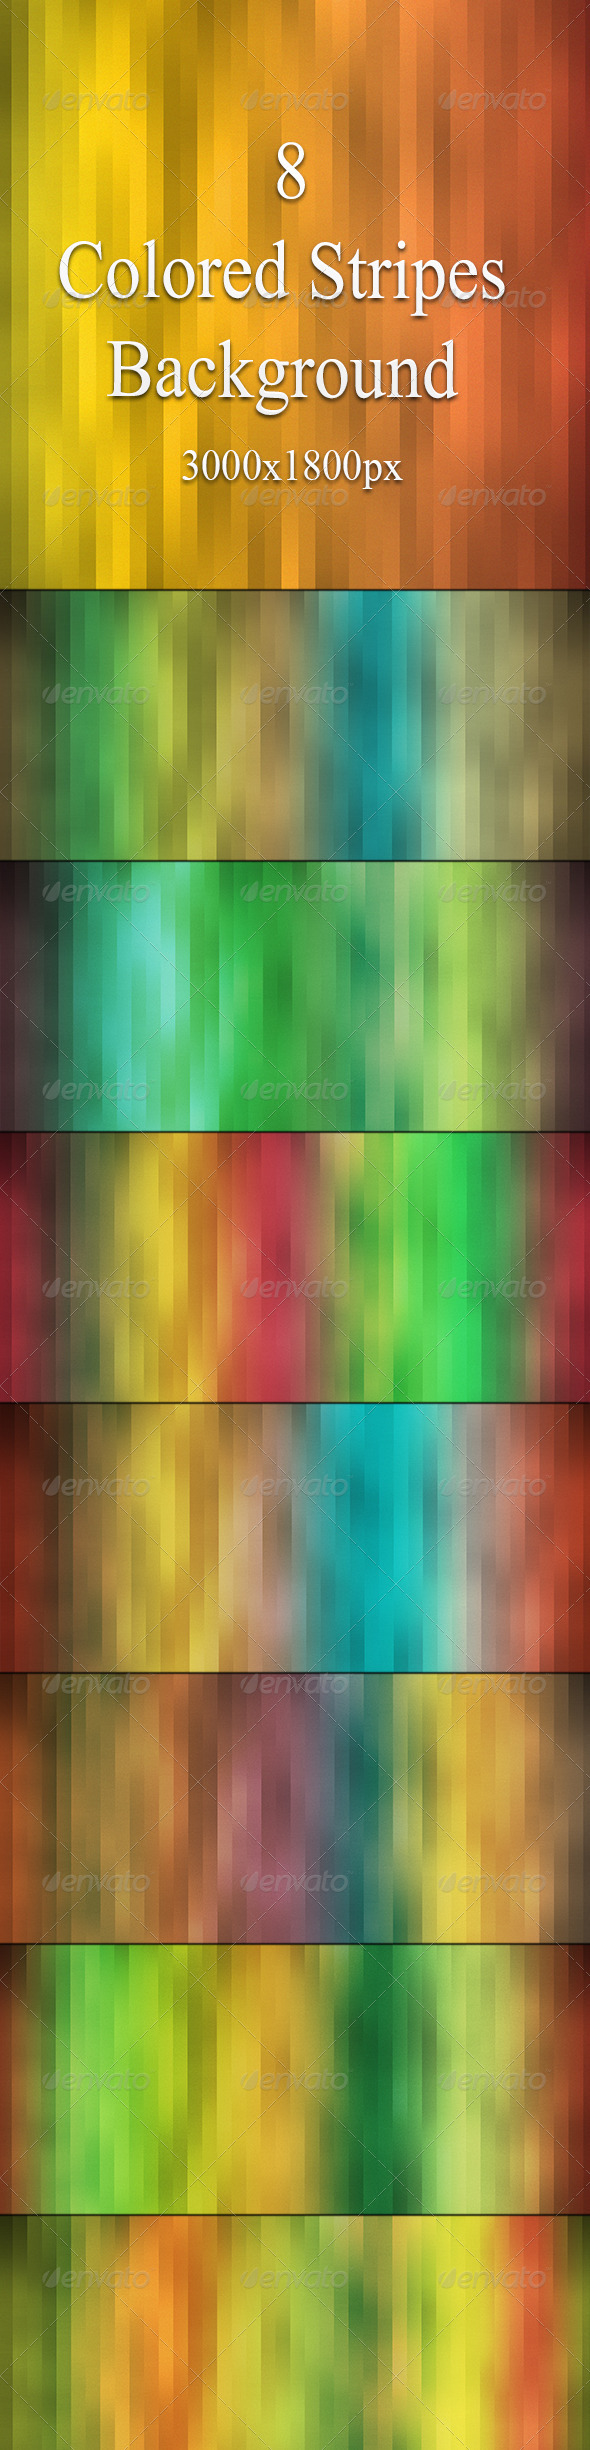 Colored Stripes Background - Abstract Backgrounds